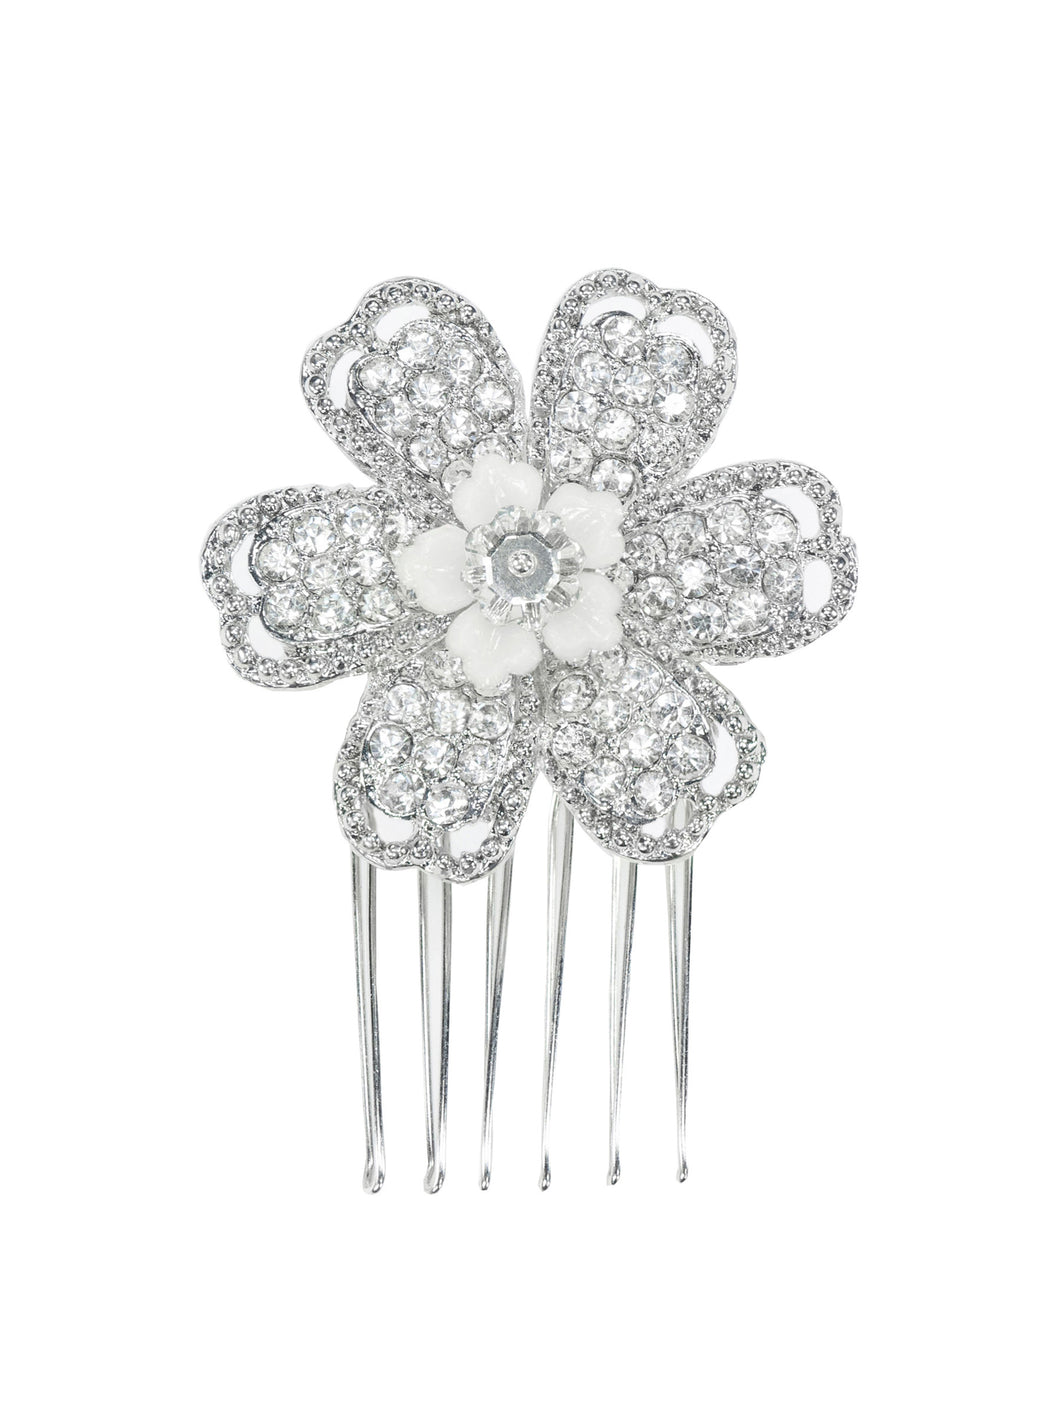 Opulence Rhinestone Single Flower Comb - Medium